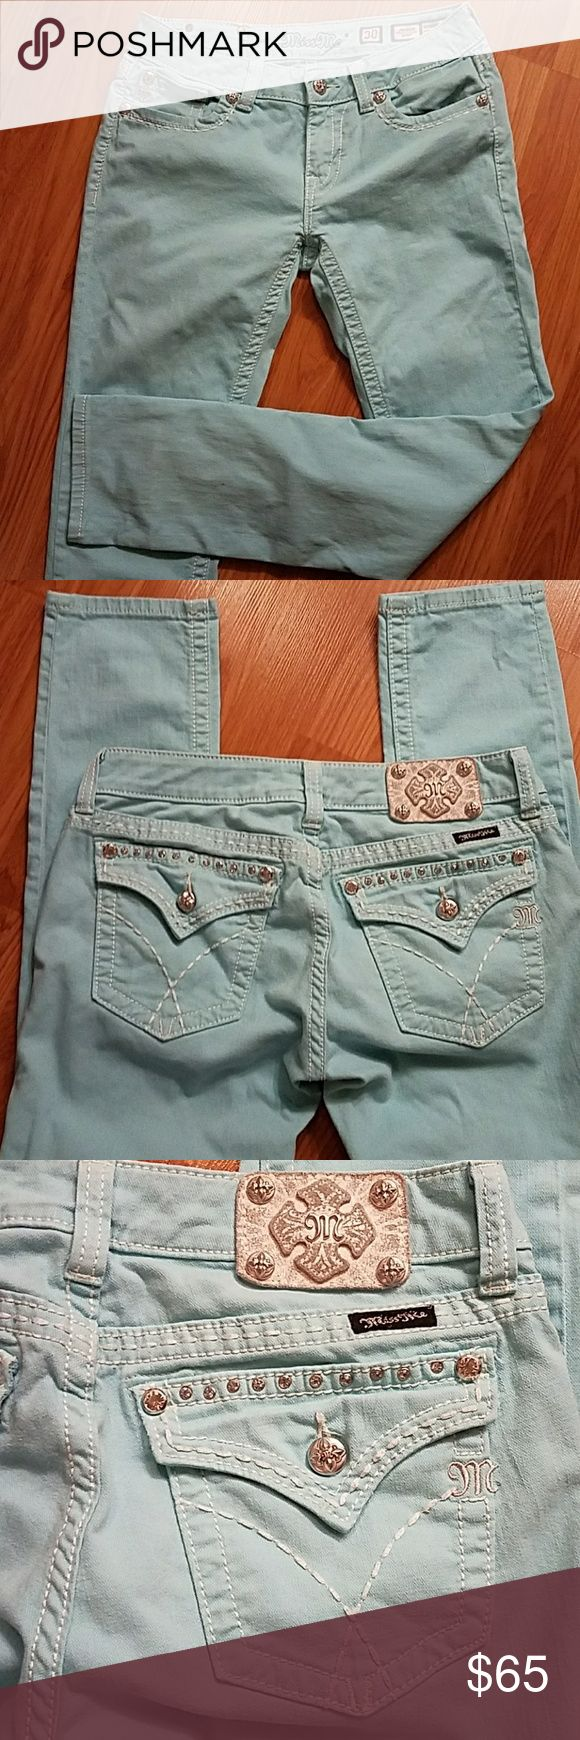 Miss me Skinny jeans Miss me skinny jeans  Size 30 Color ligth blue  Used in great condition. It has white stones on the back pockets. Miss Me Jeans Skinny